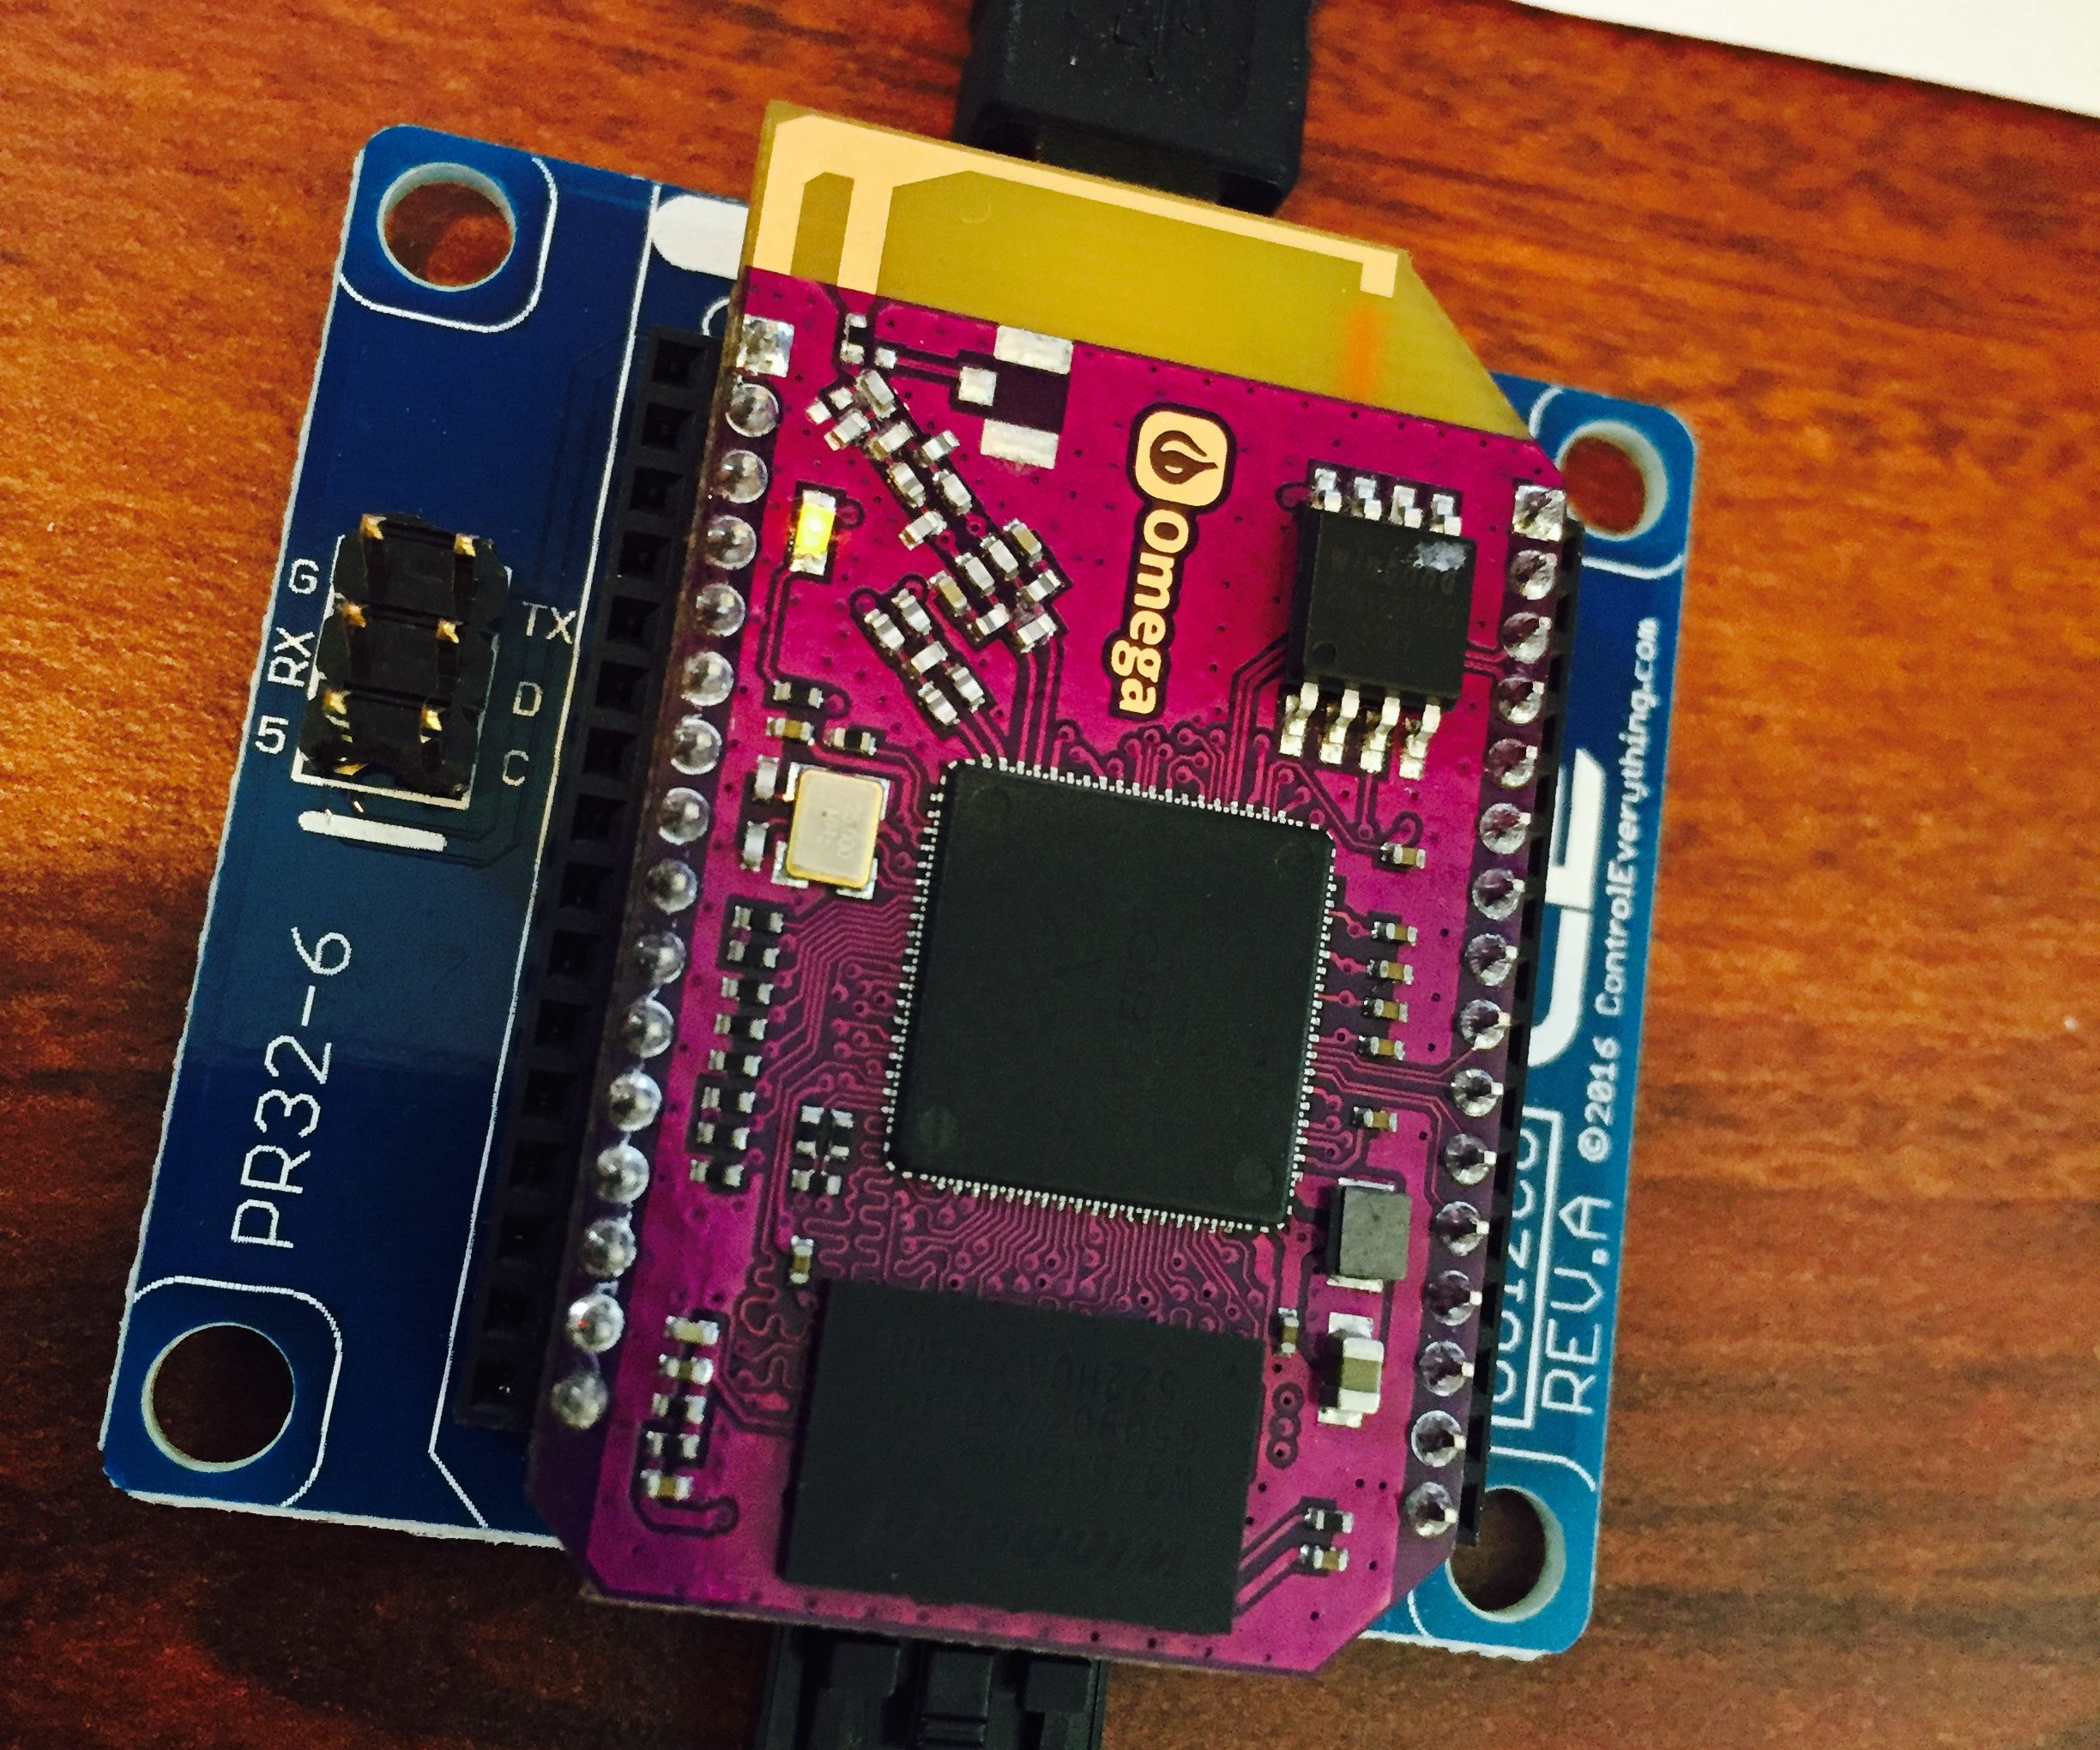 Smart WiFi Router Reboot Switch using Onion Omega 2 & 1